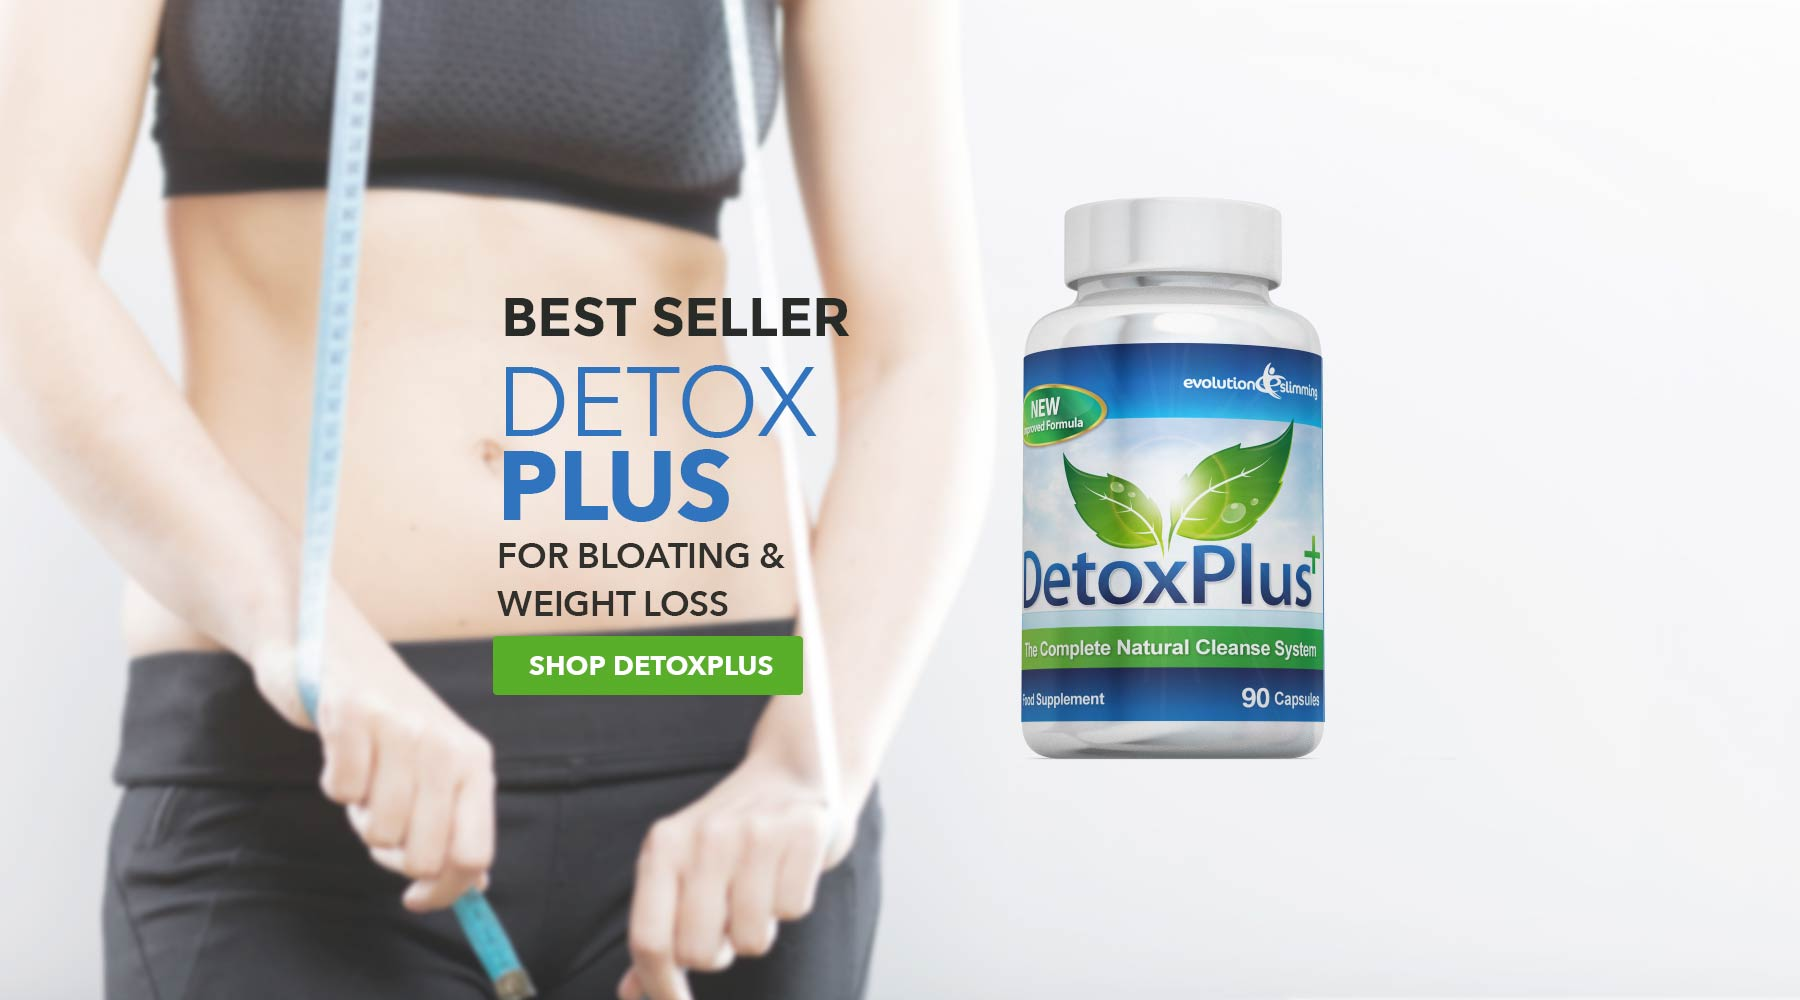 DetoxPlus Complete Cleansing System